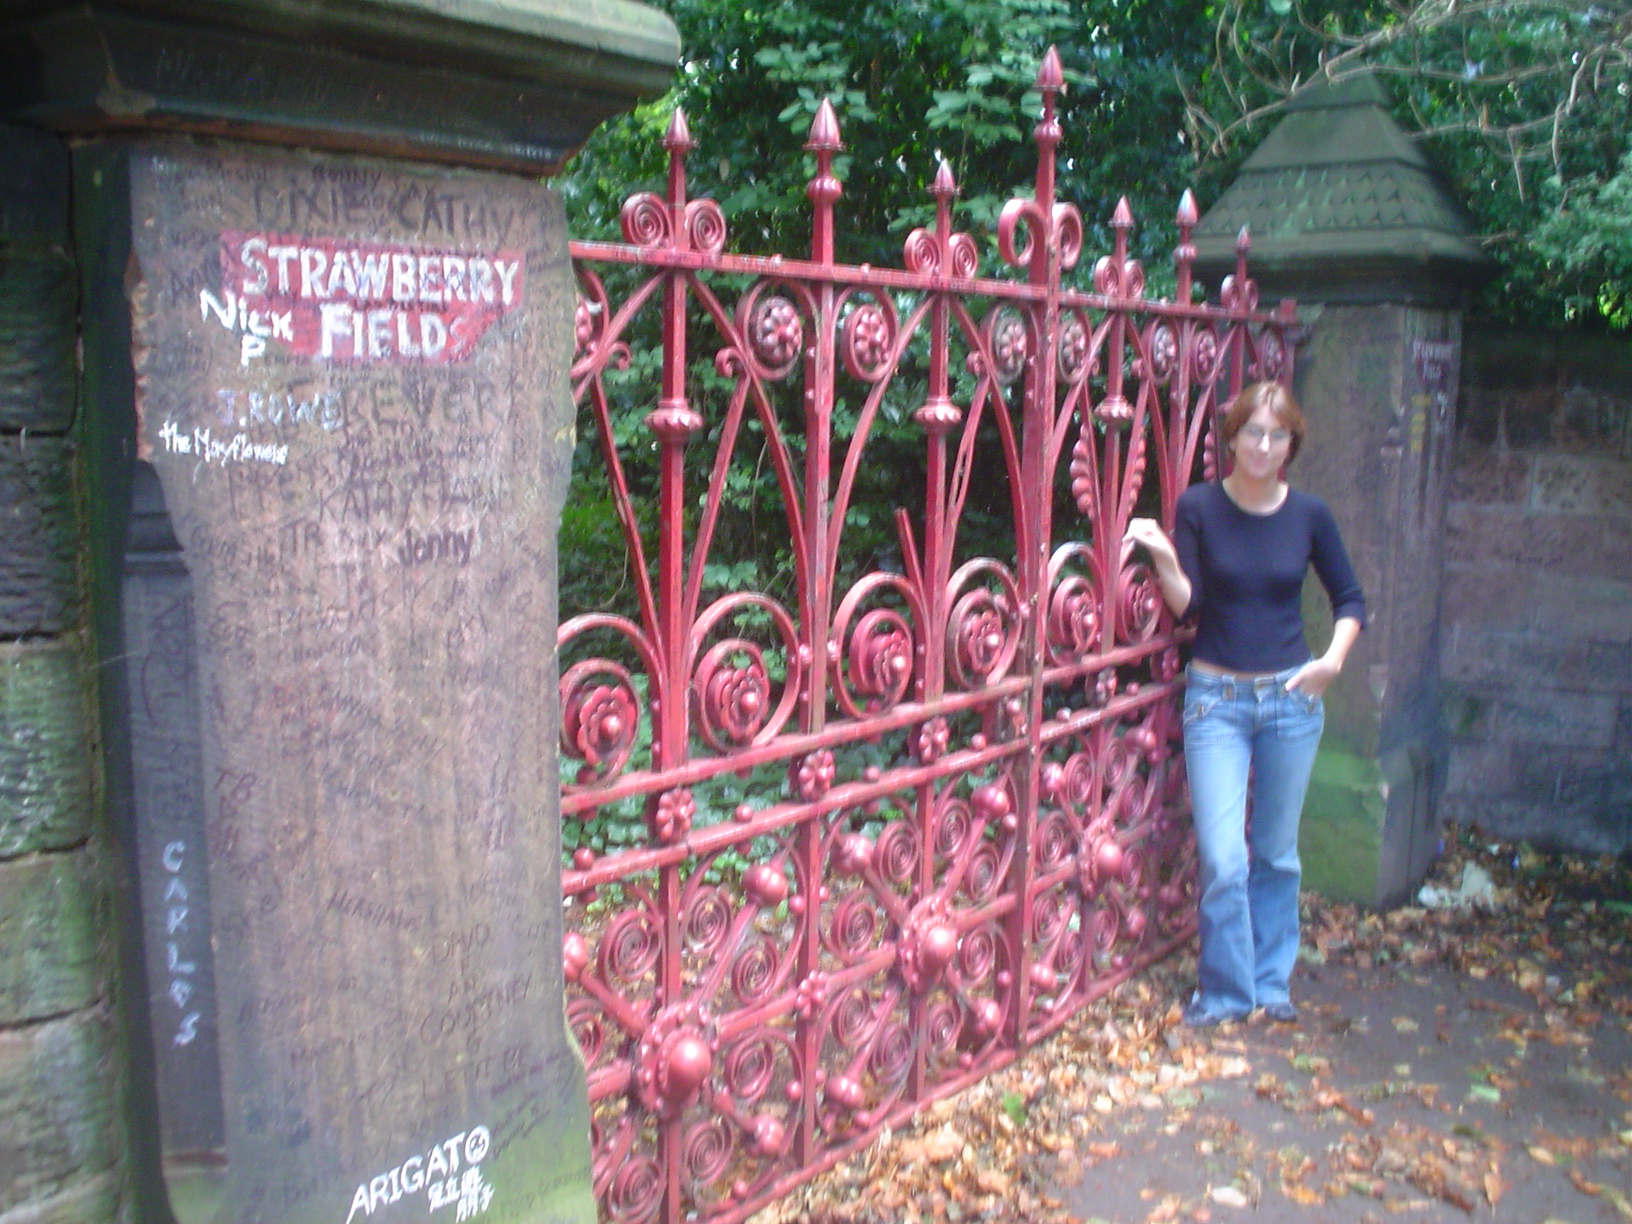 THE Strawberry Fields! My mind is blown in this picture. (That's why the photo is so damn fuzzy.)